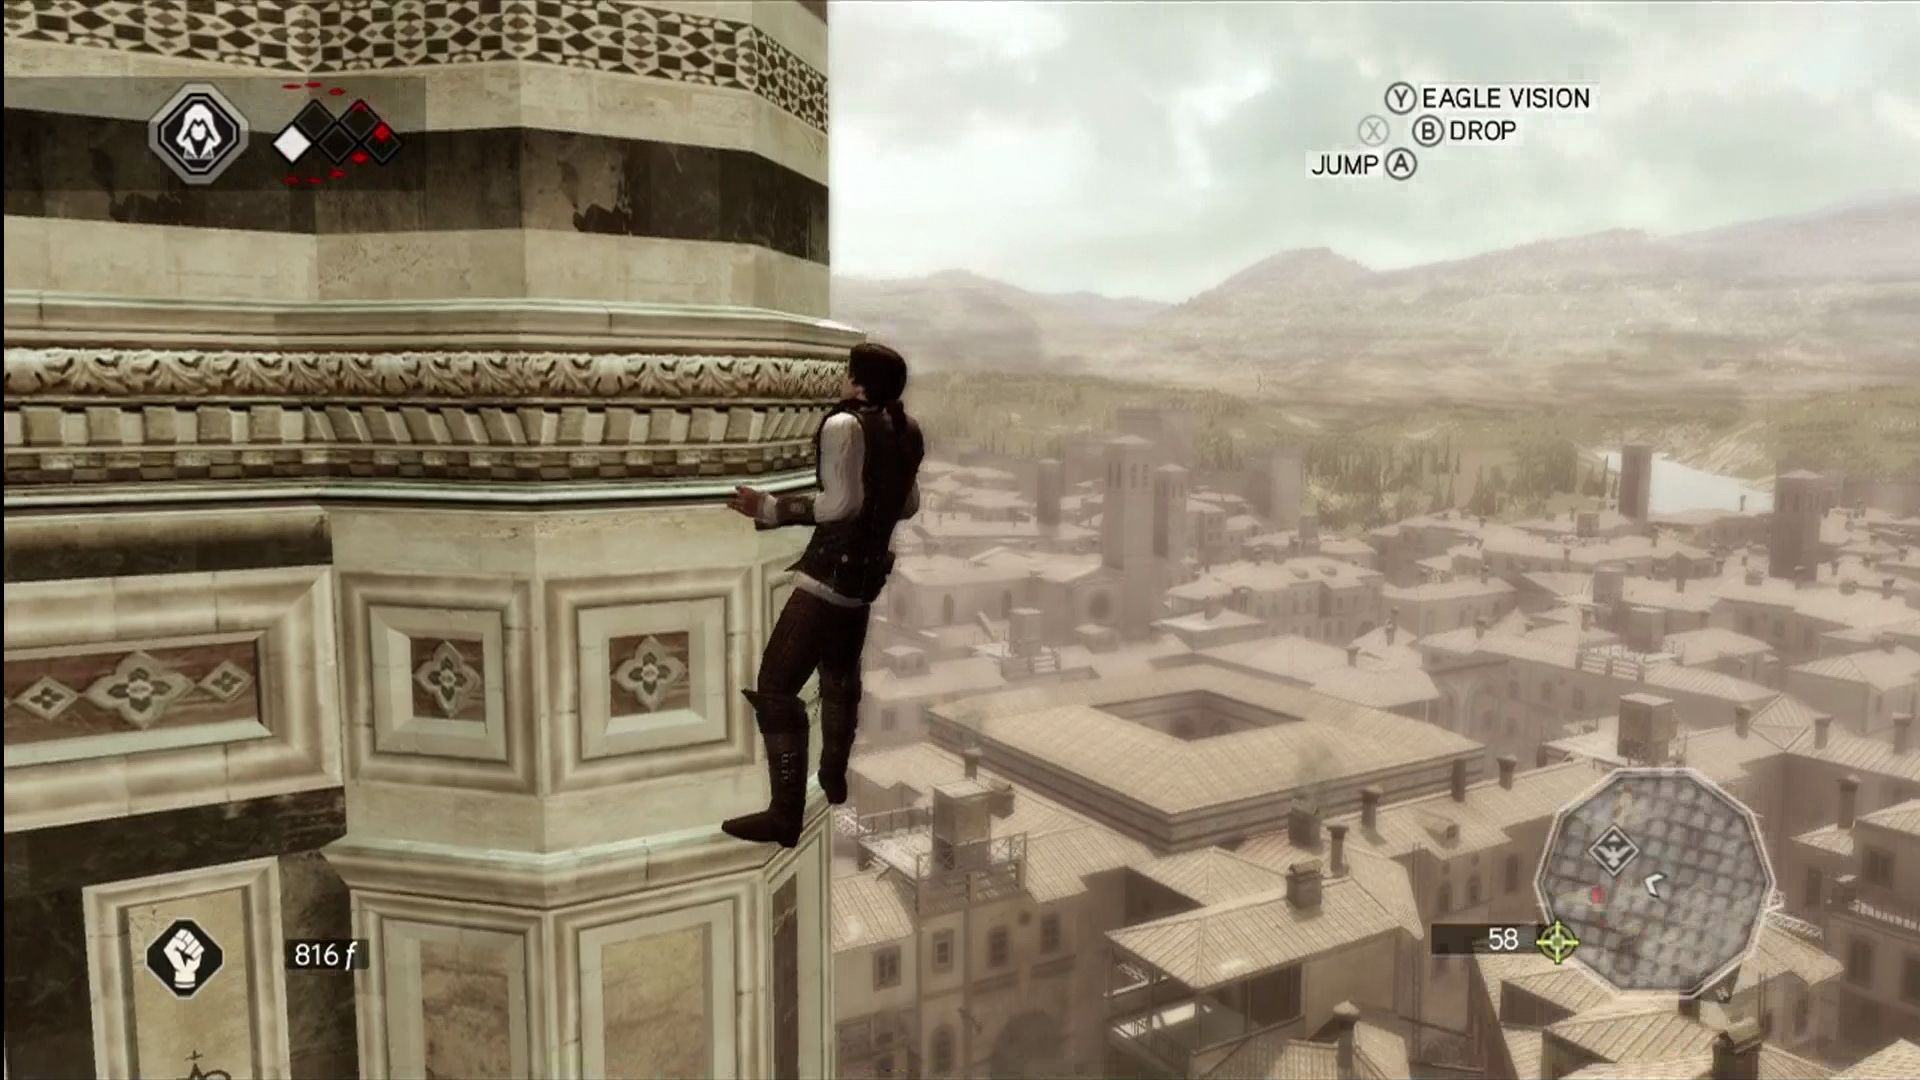 Assassin's Creed II Screenshots for Xbox 360 - MobyGames